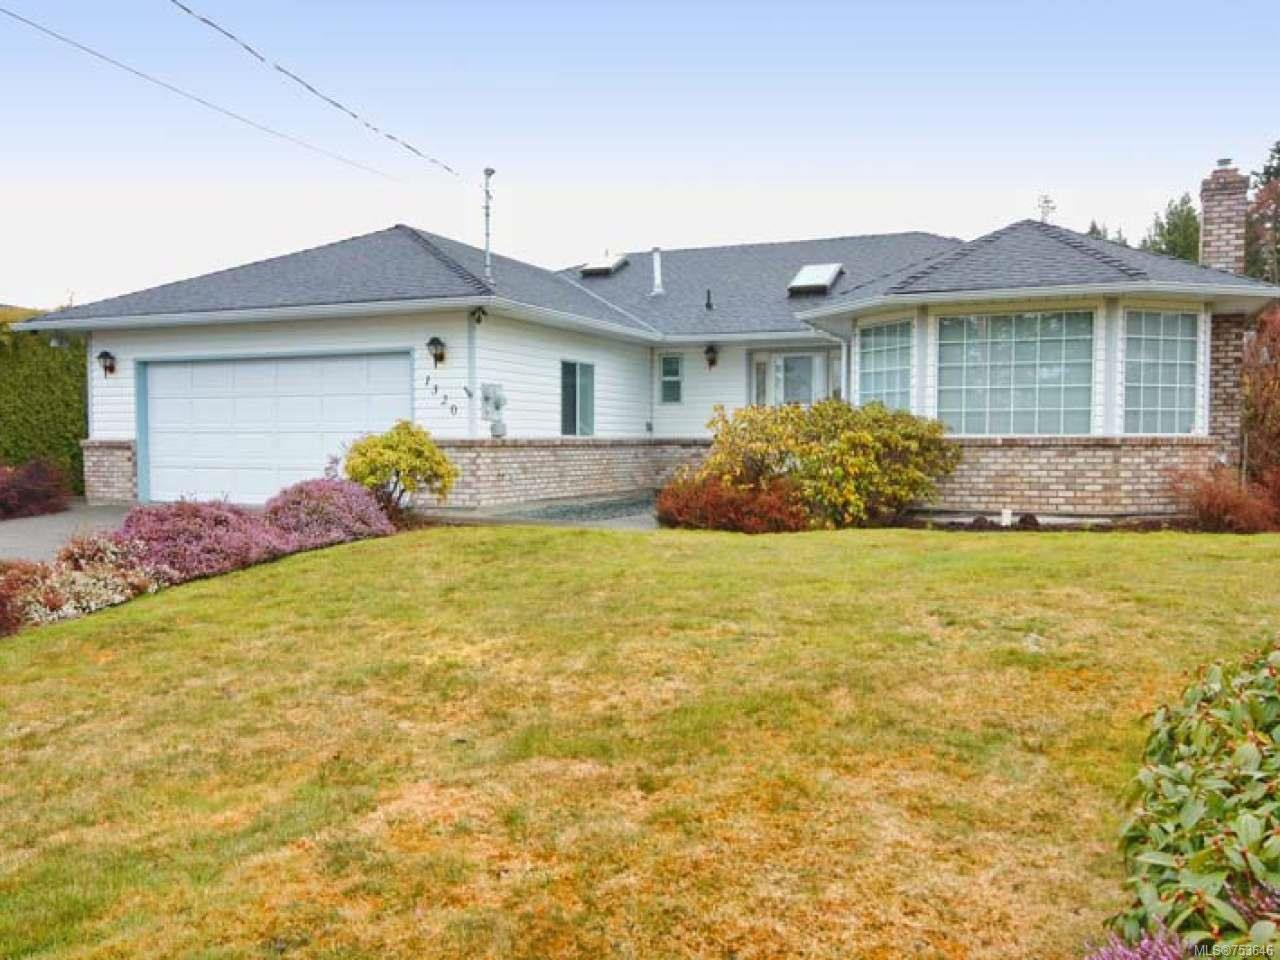 Main Photo: 1320 GILLEY Crescent in PARKSVILLE: PQ French Creek House for sale (Parksville/Qualicum)  : MLS®# 753646